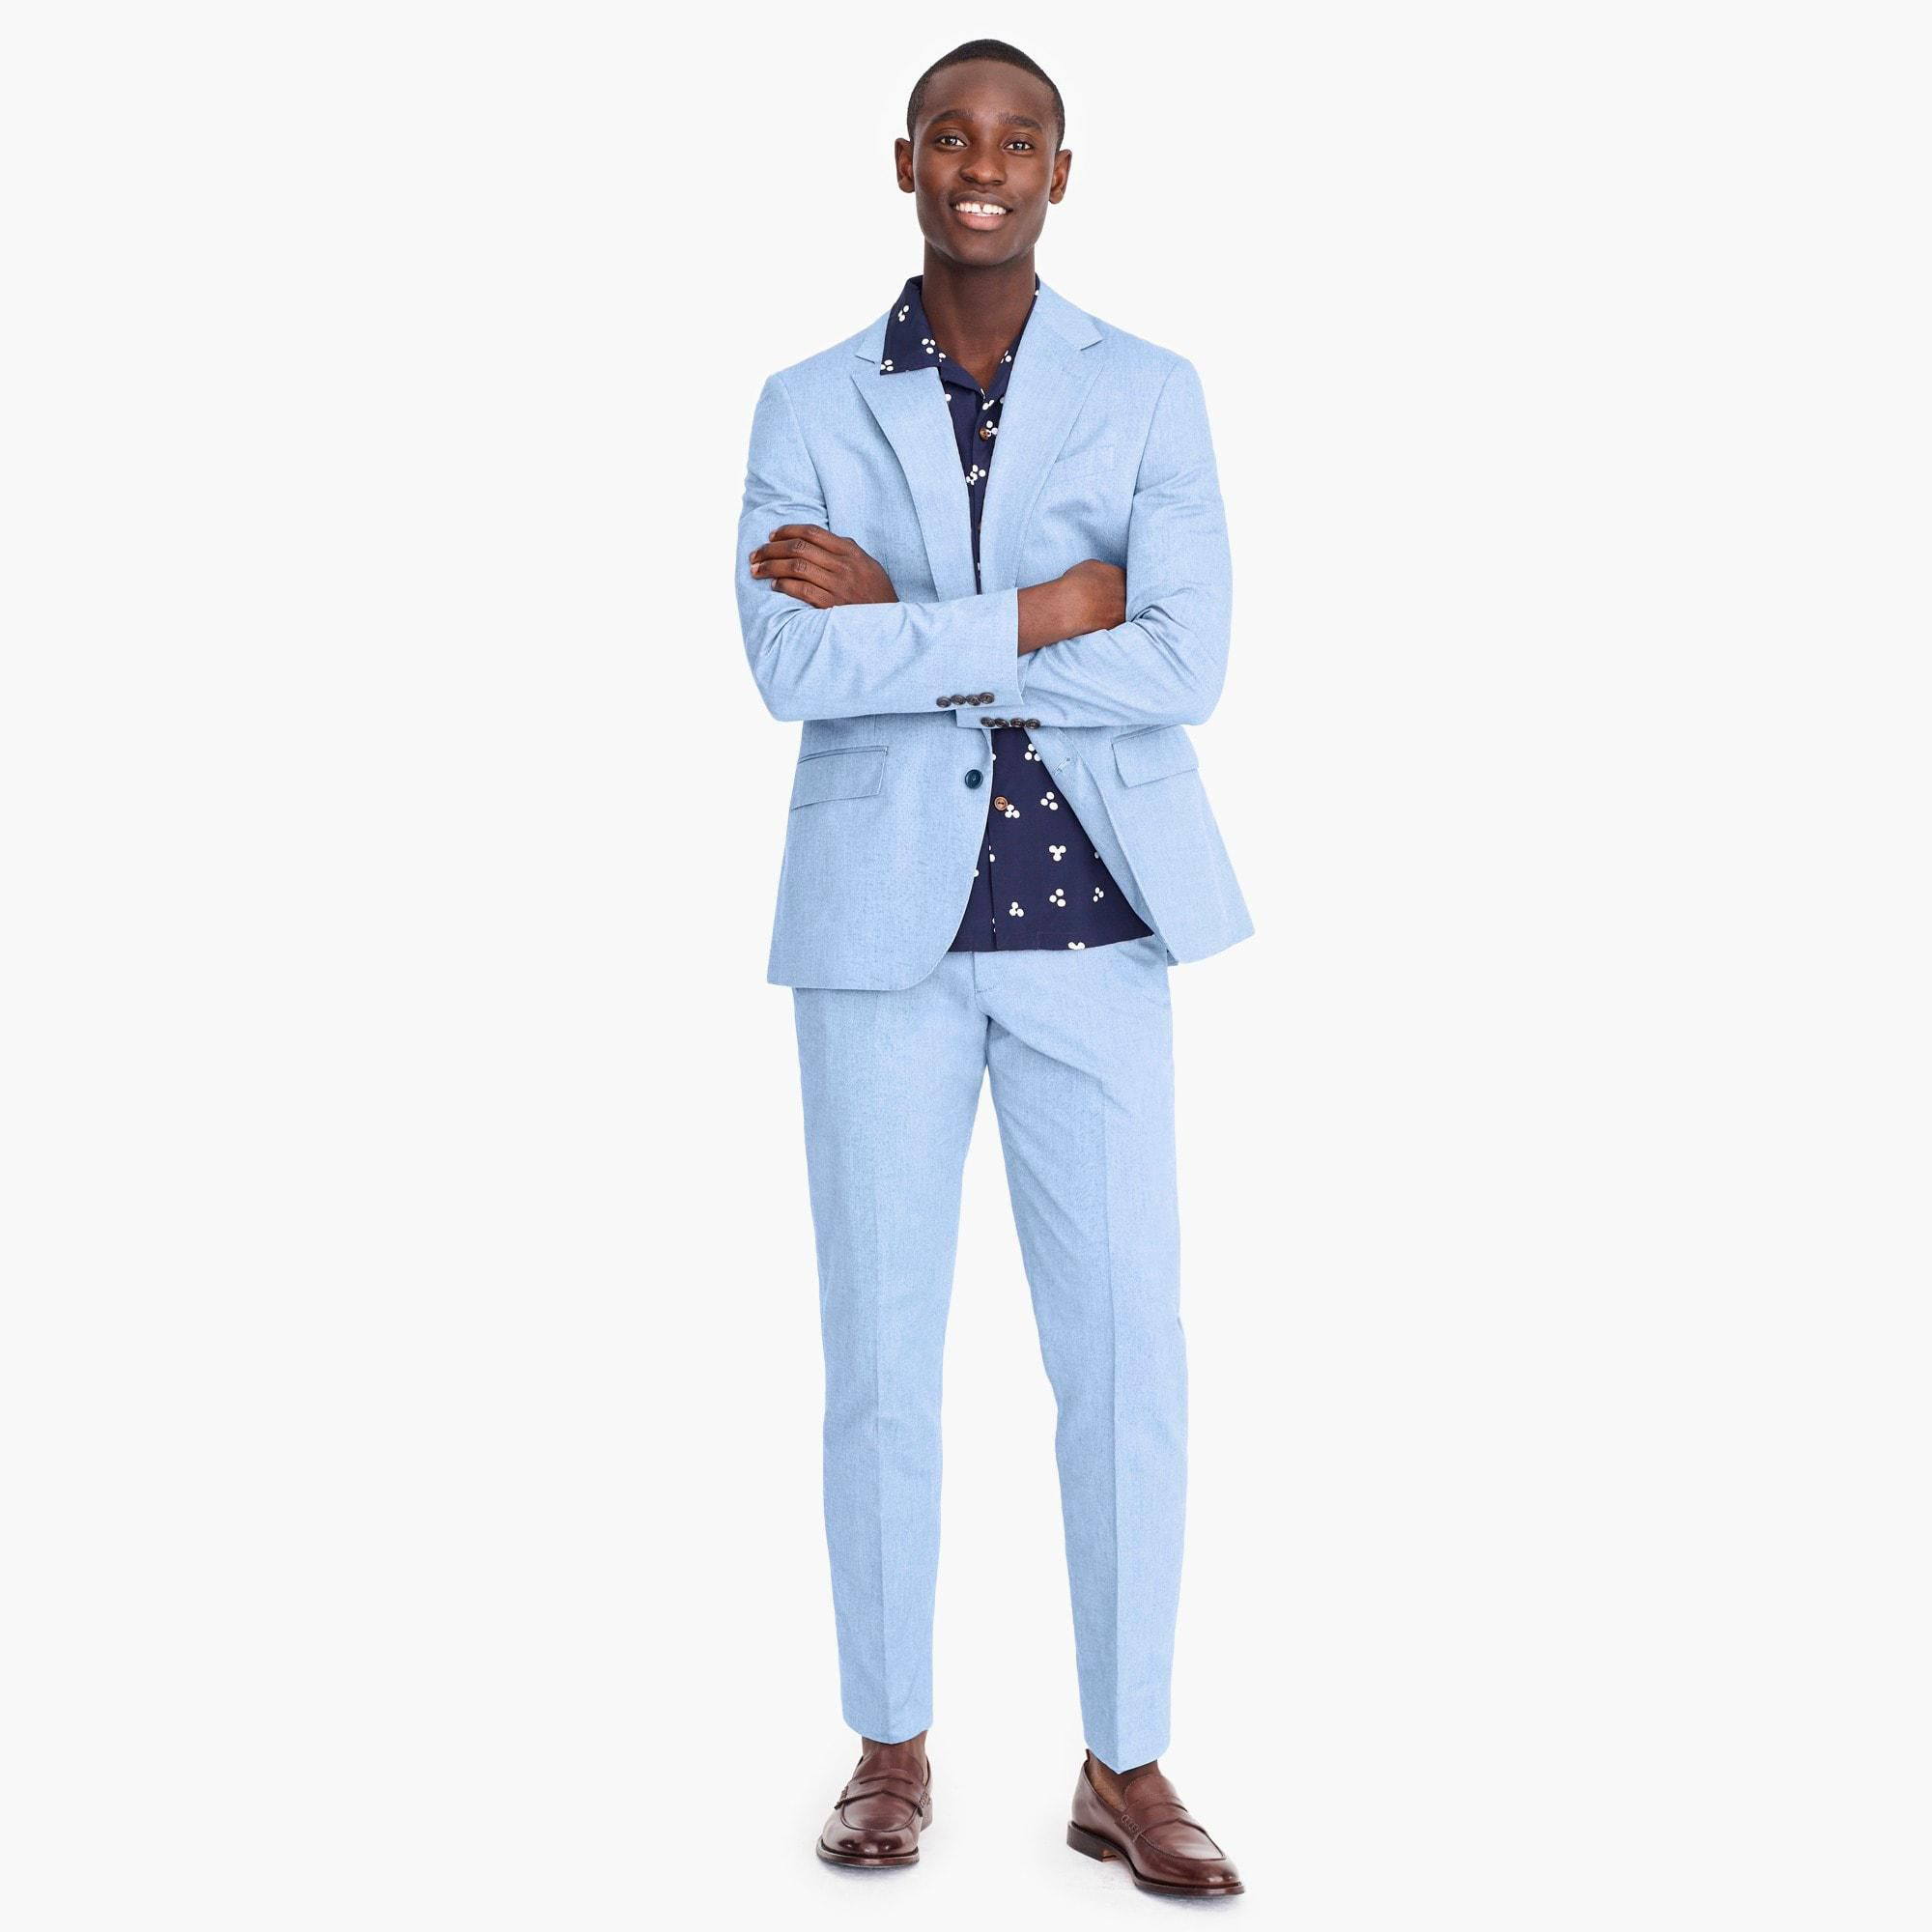 Mens Summer Wedding Attire.15 Stylish Men S Suits To Wear To A Spring Or Summer Wedding